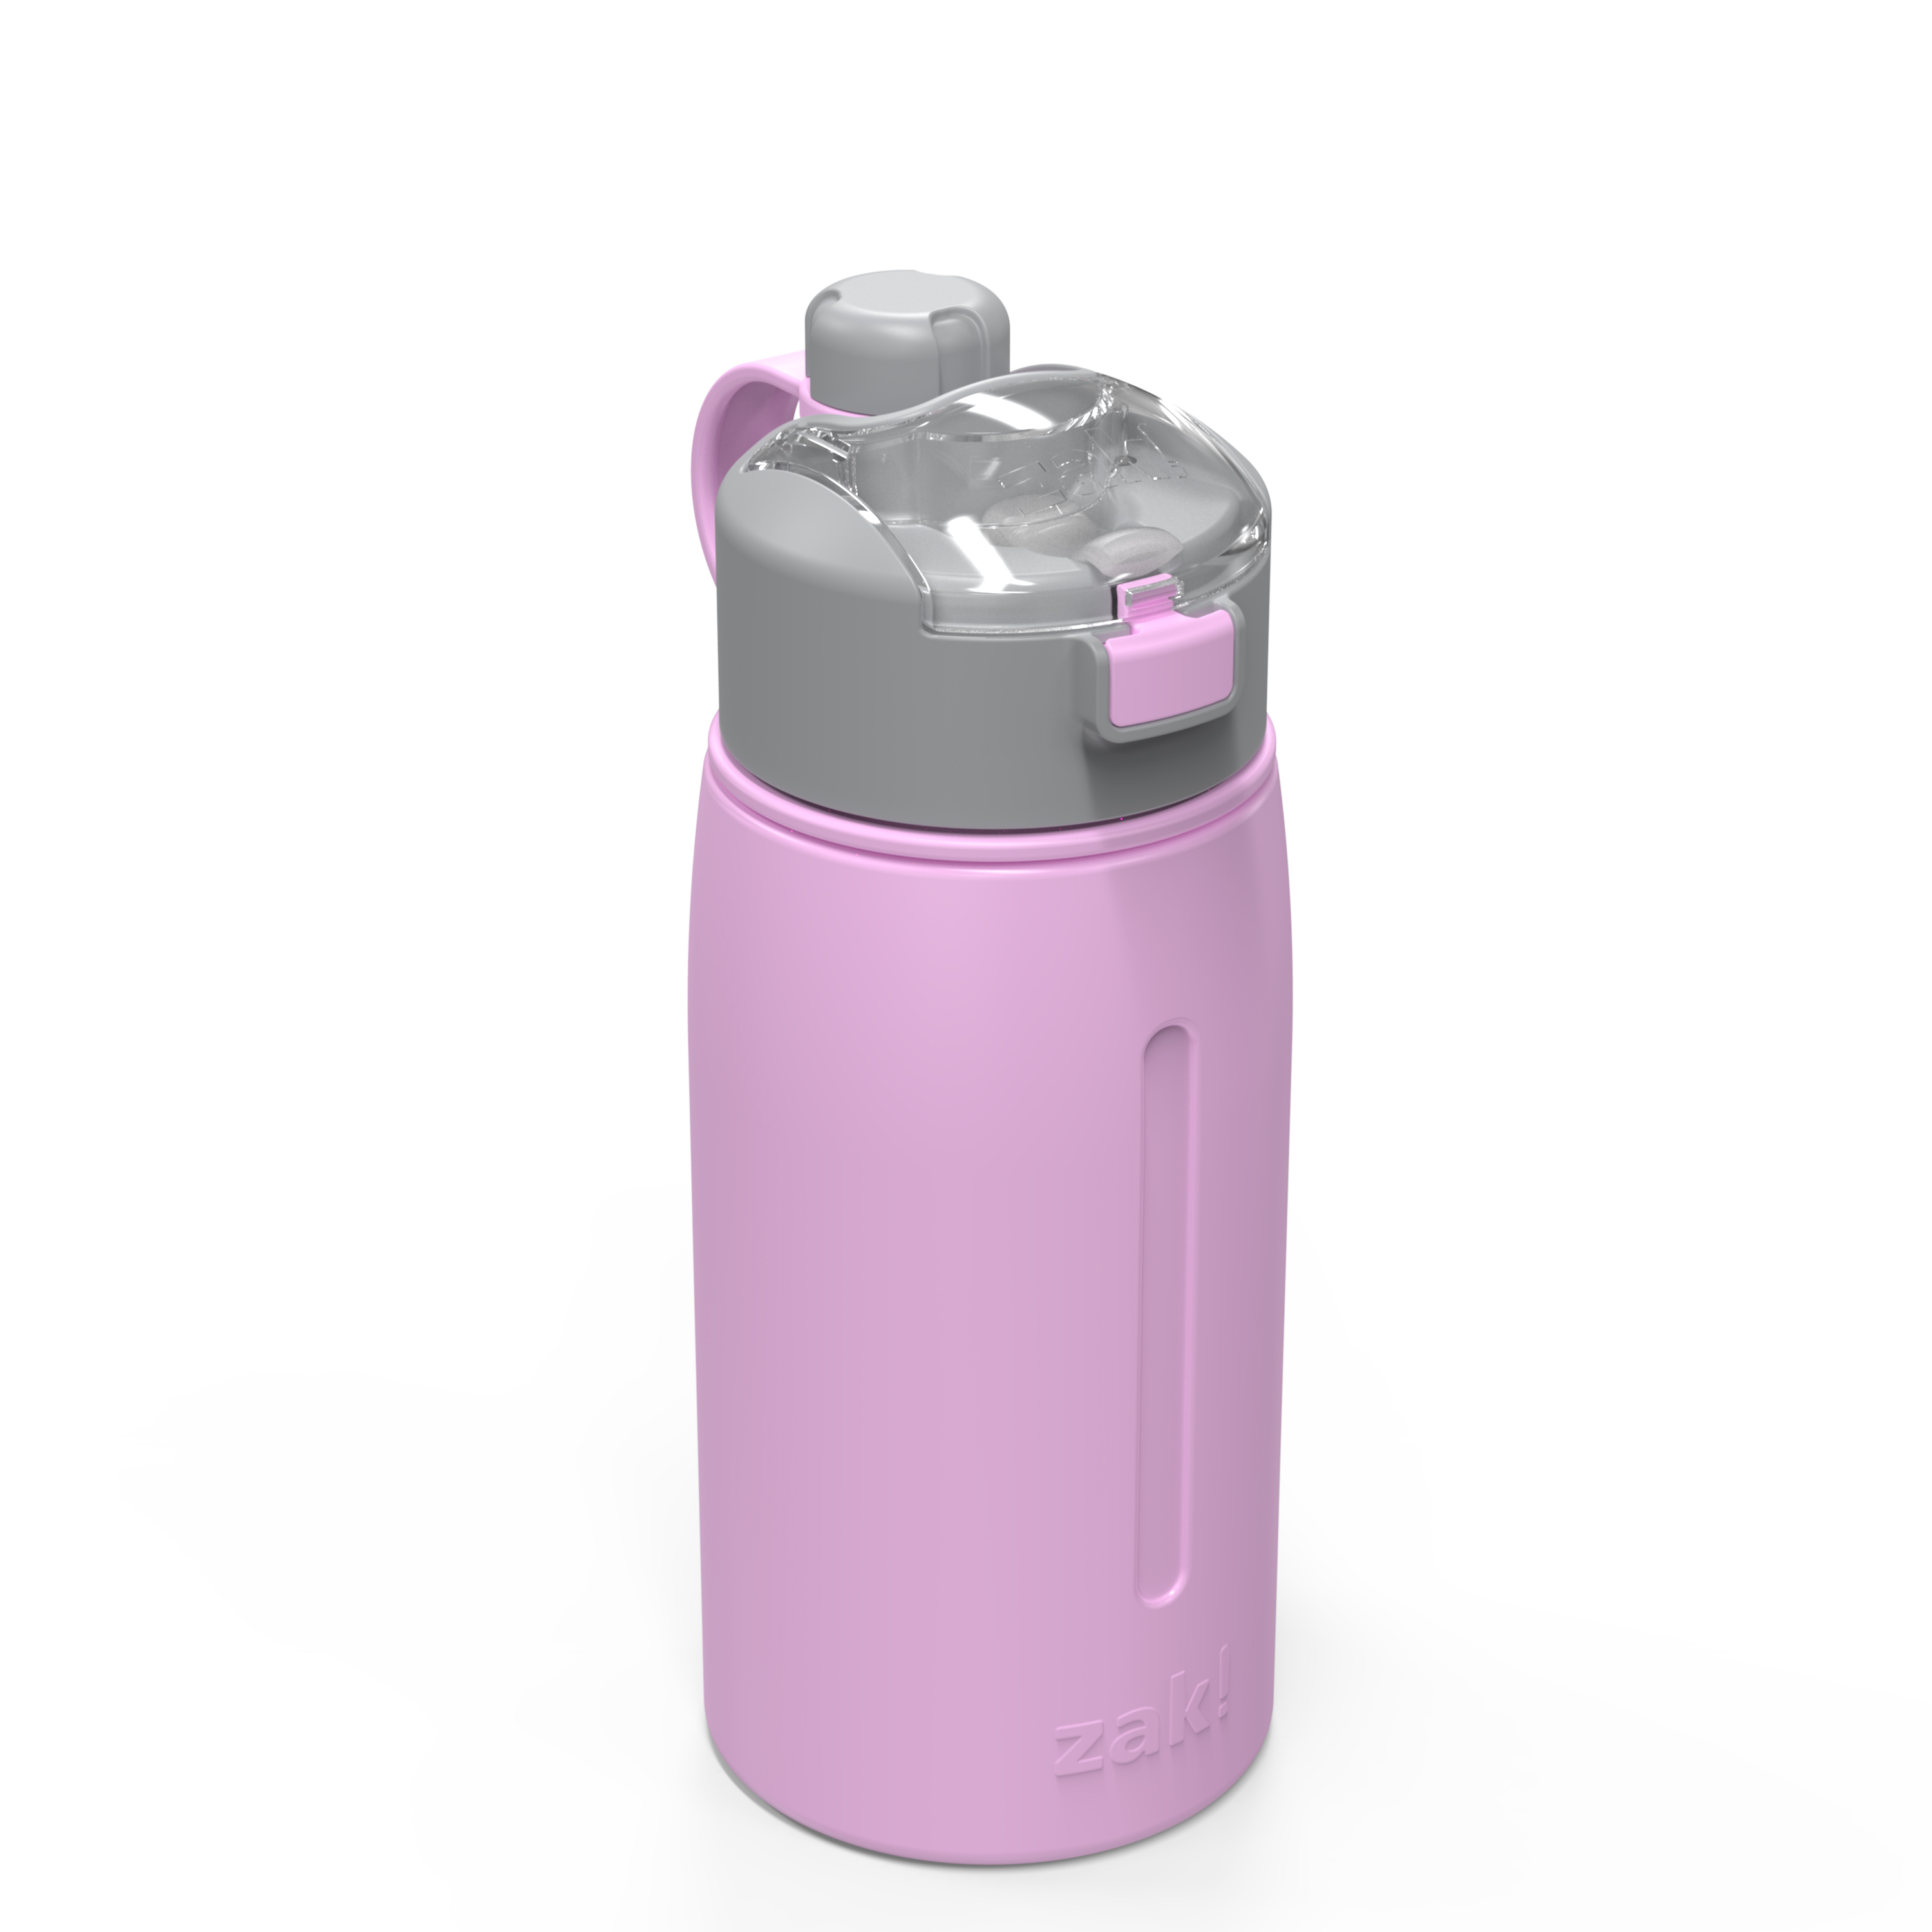 Genesis 18 ounce Vacuum Insulated Stainless Steel Tumbler, Lilac slideshow image 5